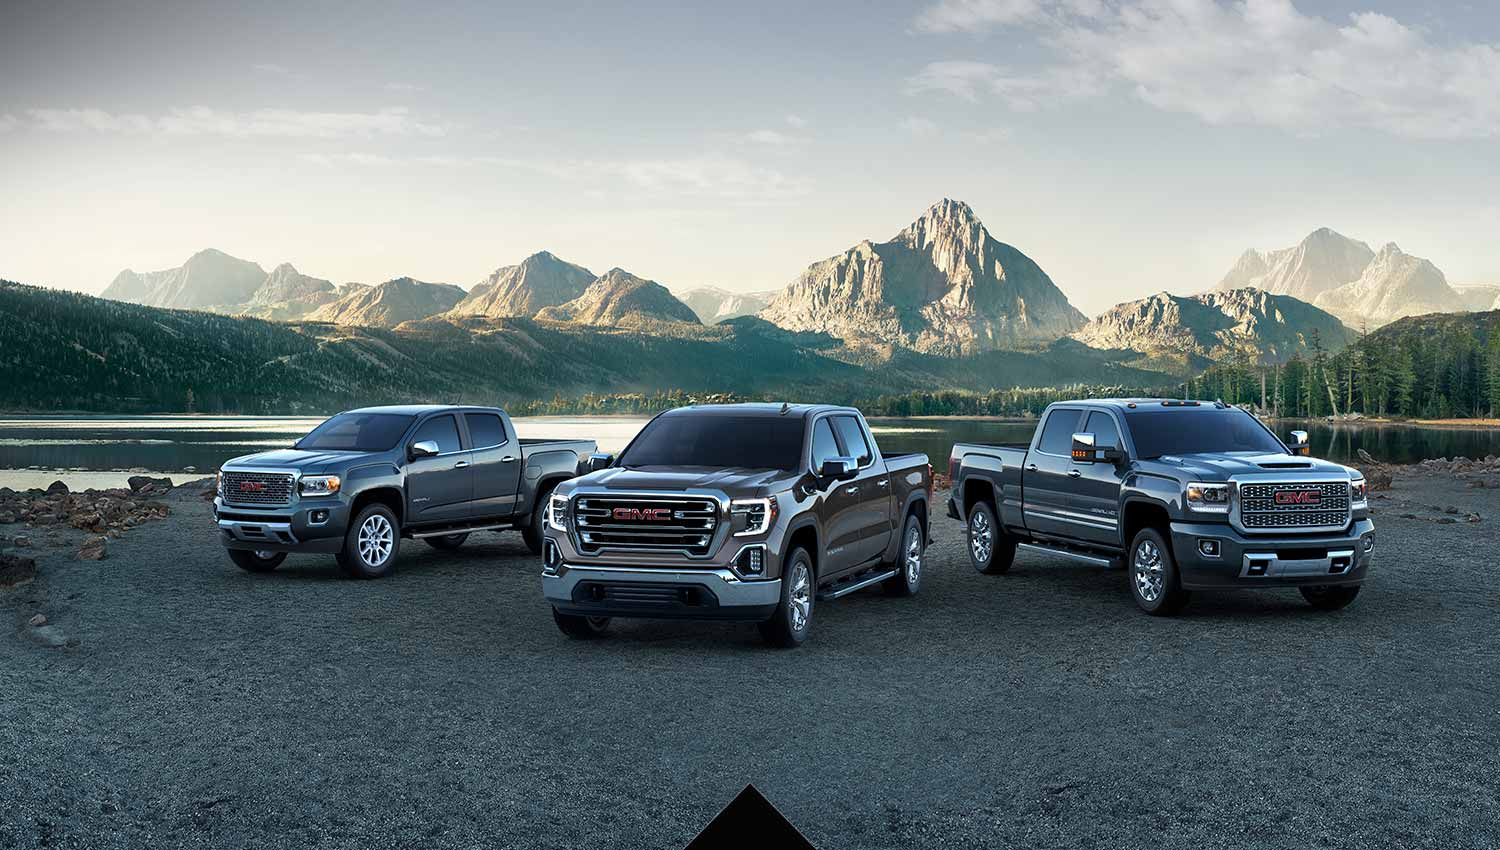 Magasin But Le Havre Trucks Suvs Crossovers Vans 2018 Gmc Lineup